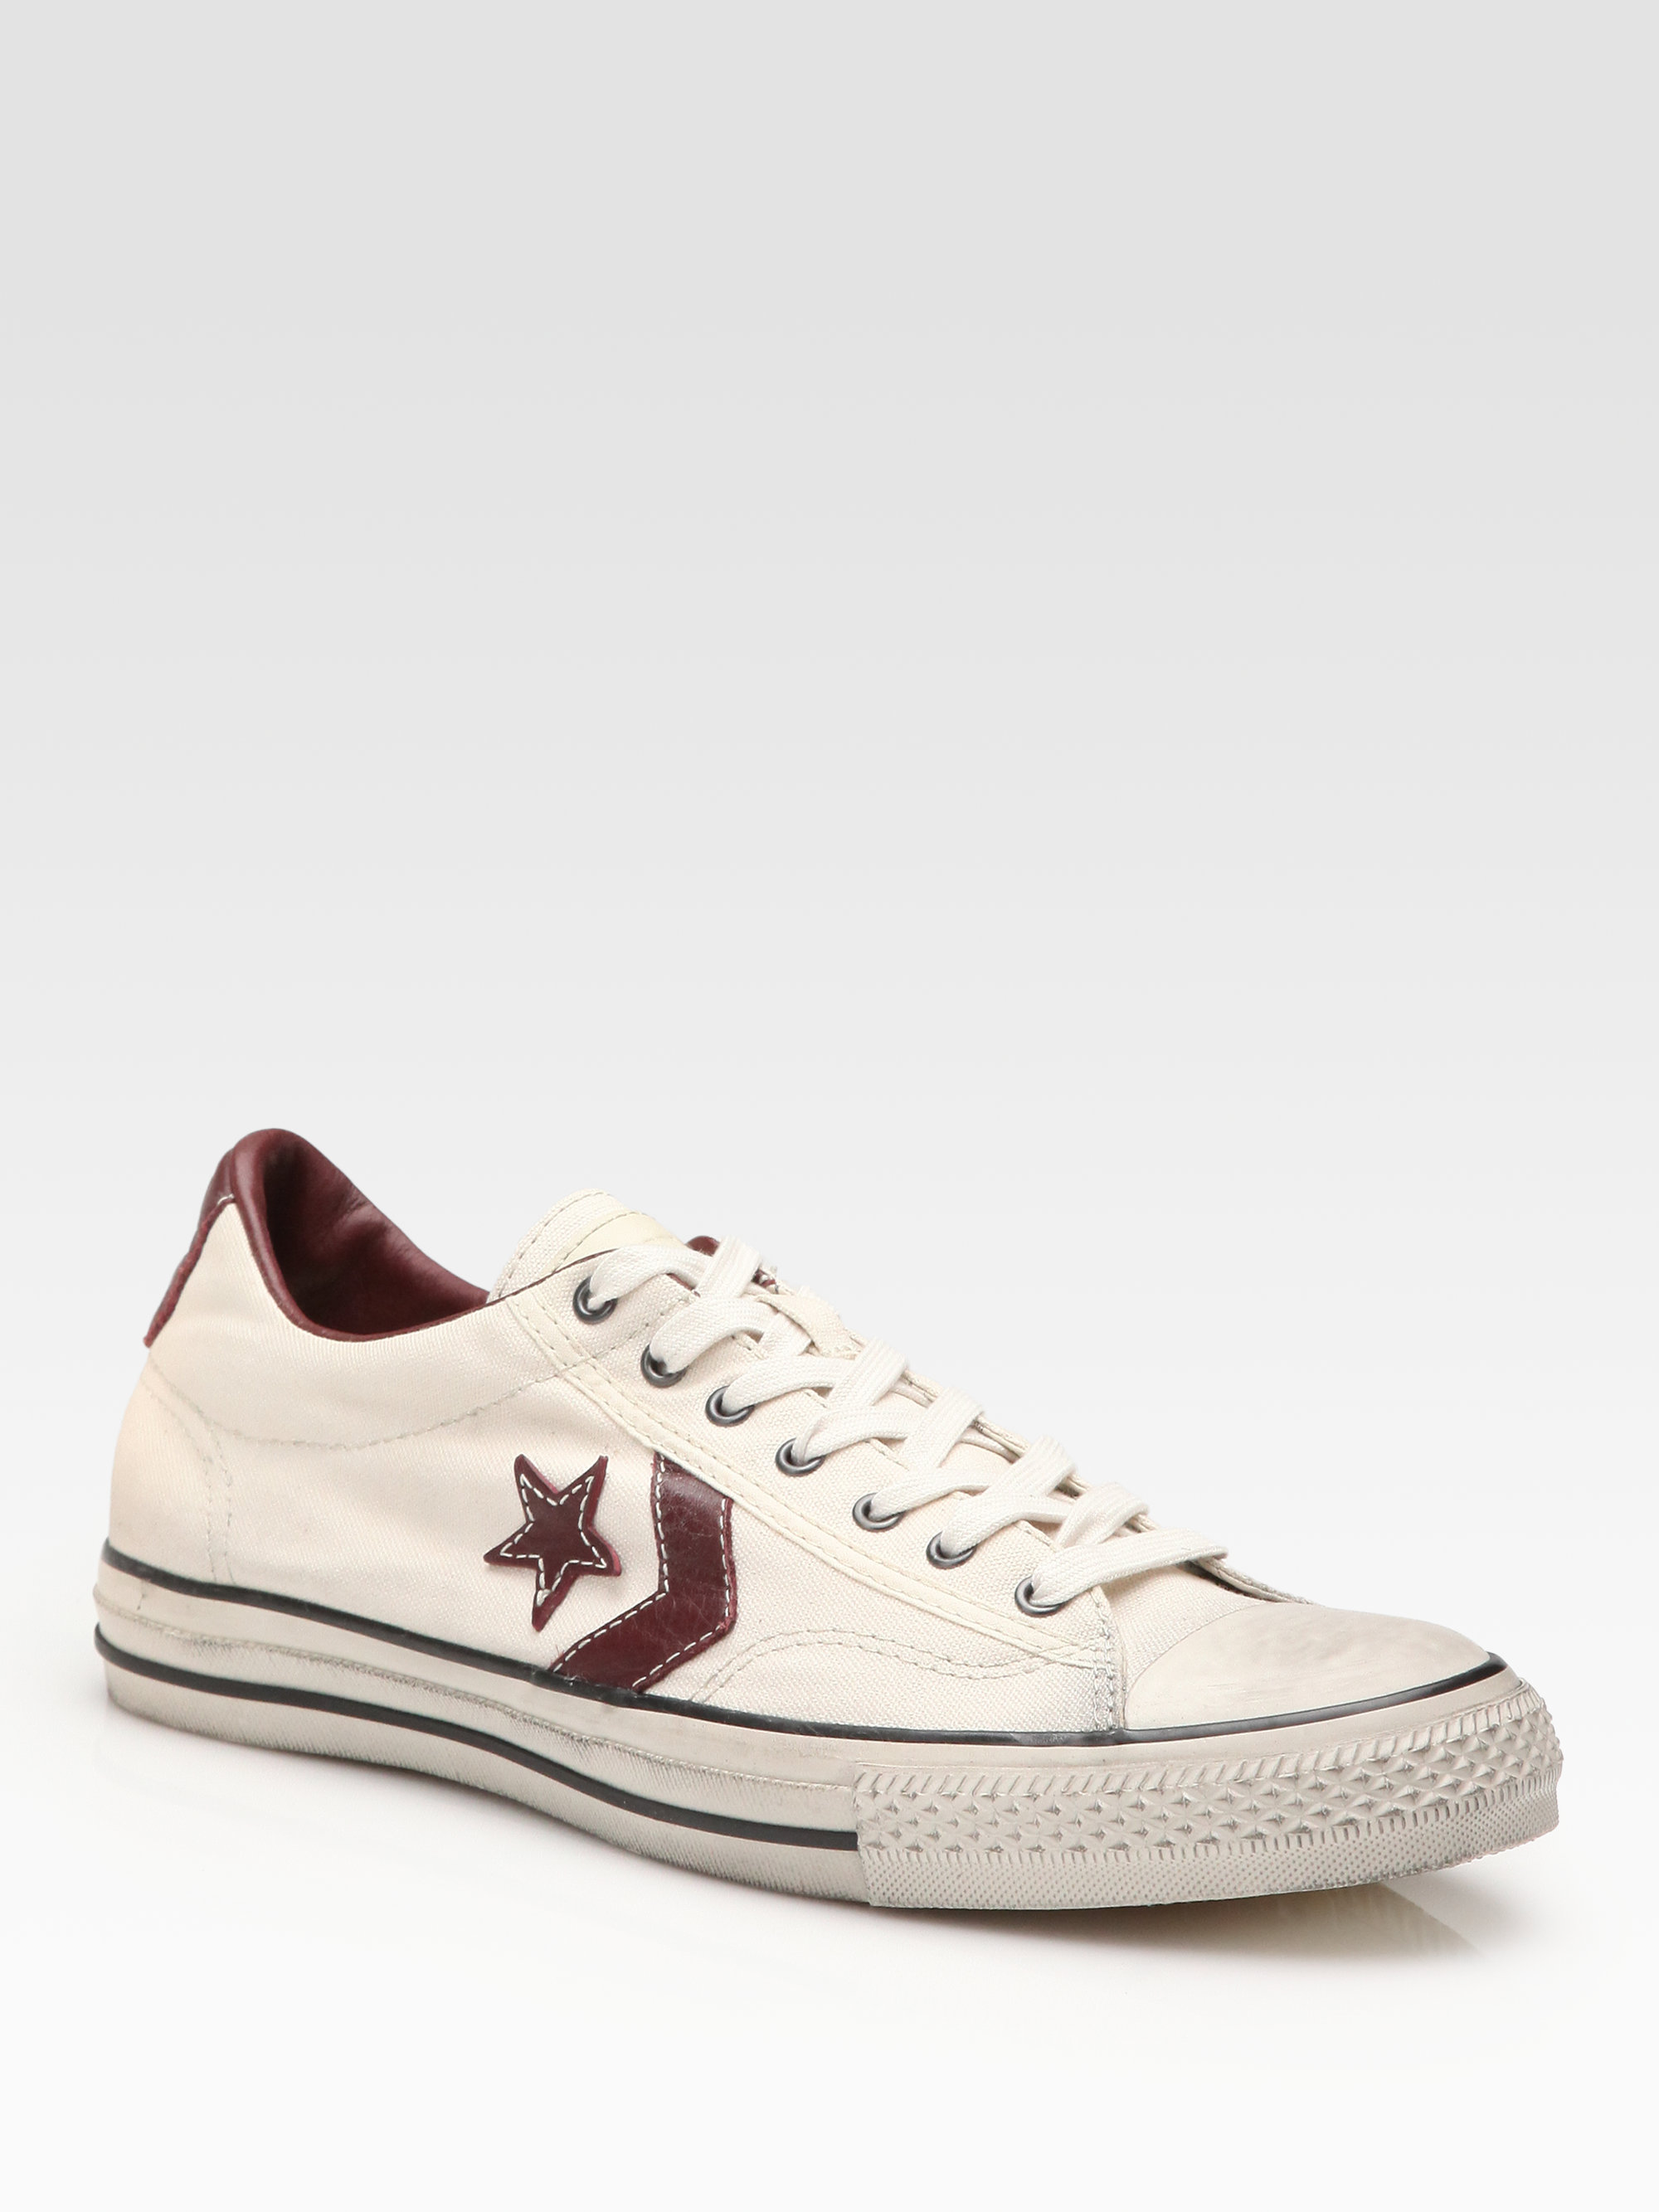 ... star player ev sneakers upcitemdb. 875a0 70bec  where to buy gallery.  previously sold at saks fifth avenue mens john varvatos converse 333d2 d42492c73